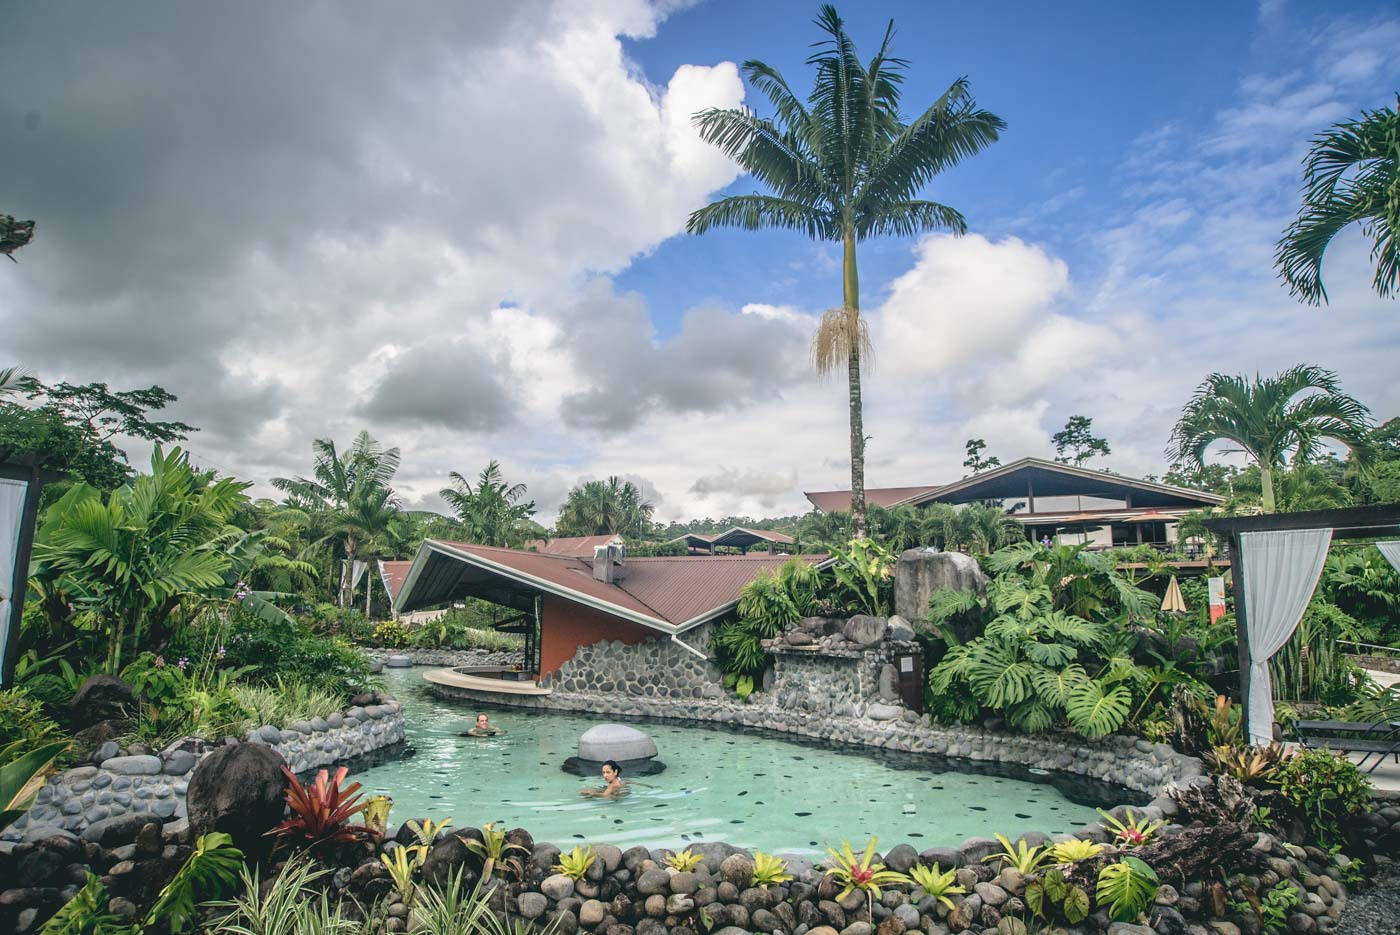 Where to stay in Arenal: Arenal Springs Hotel